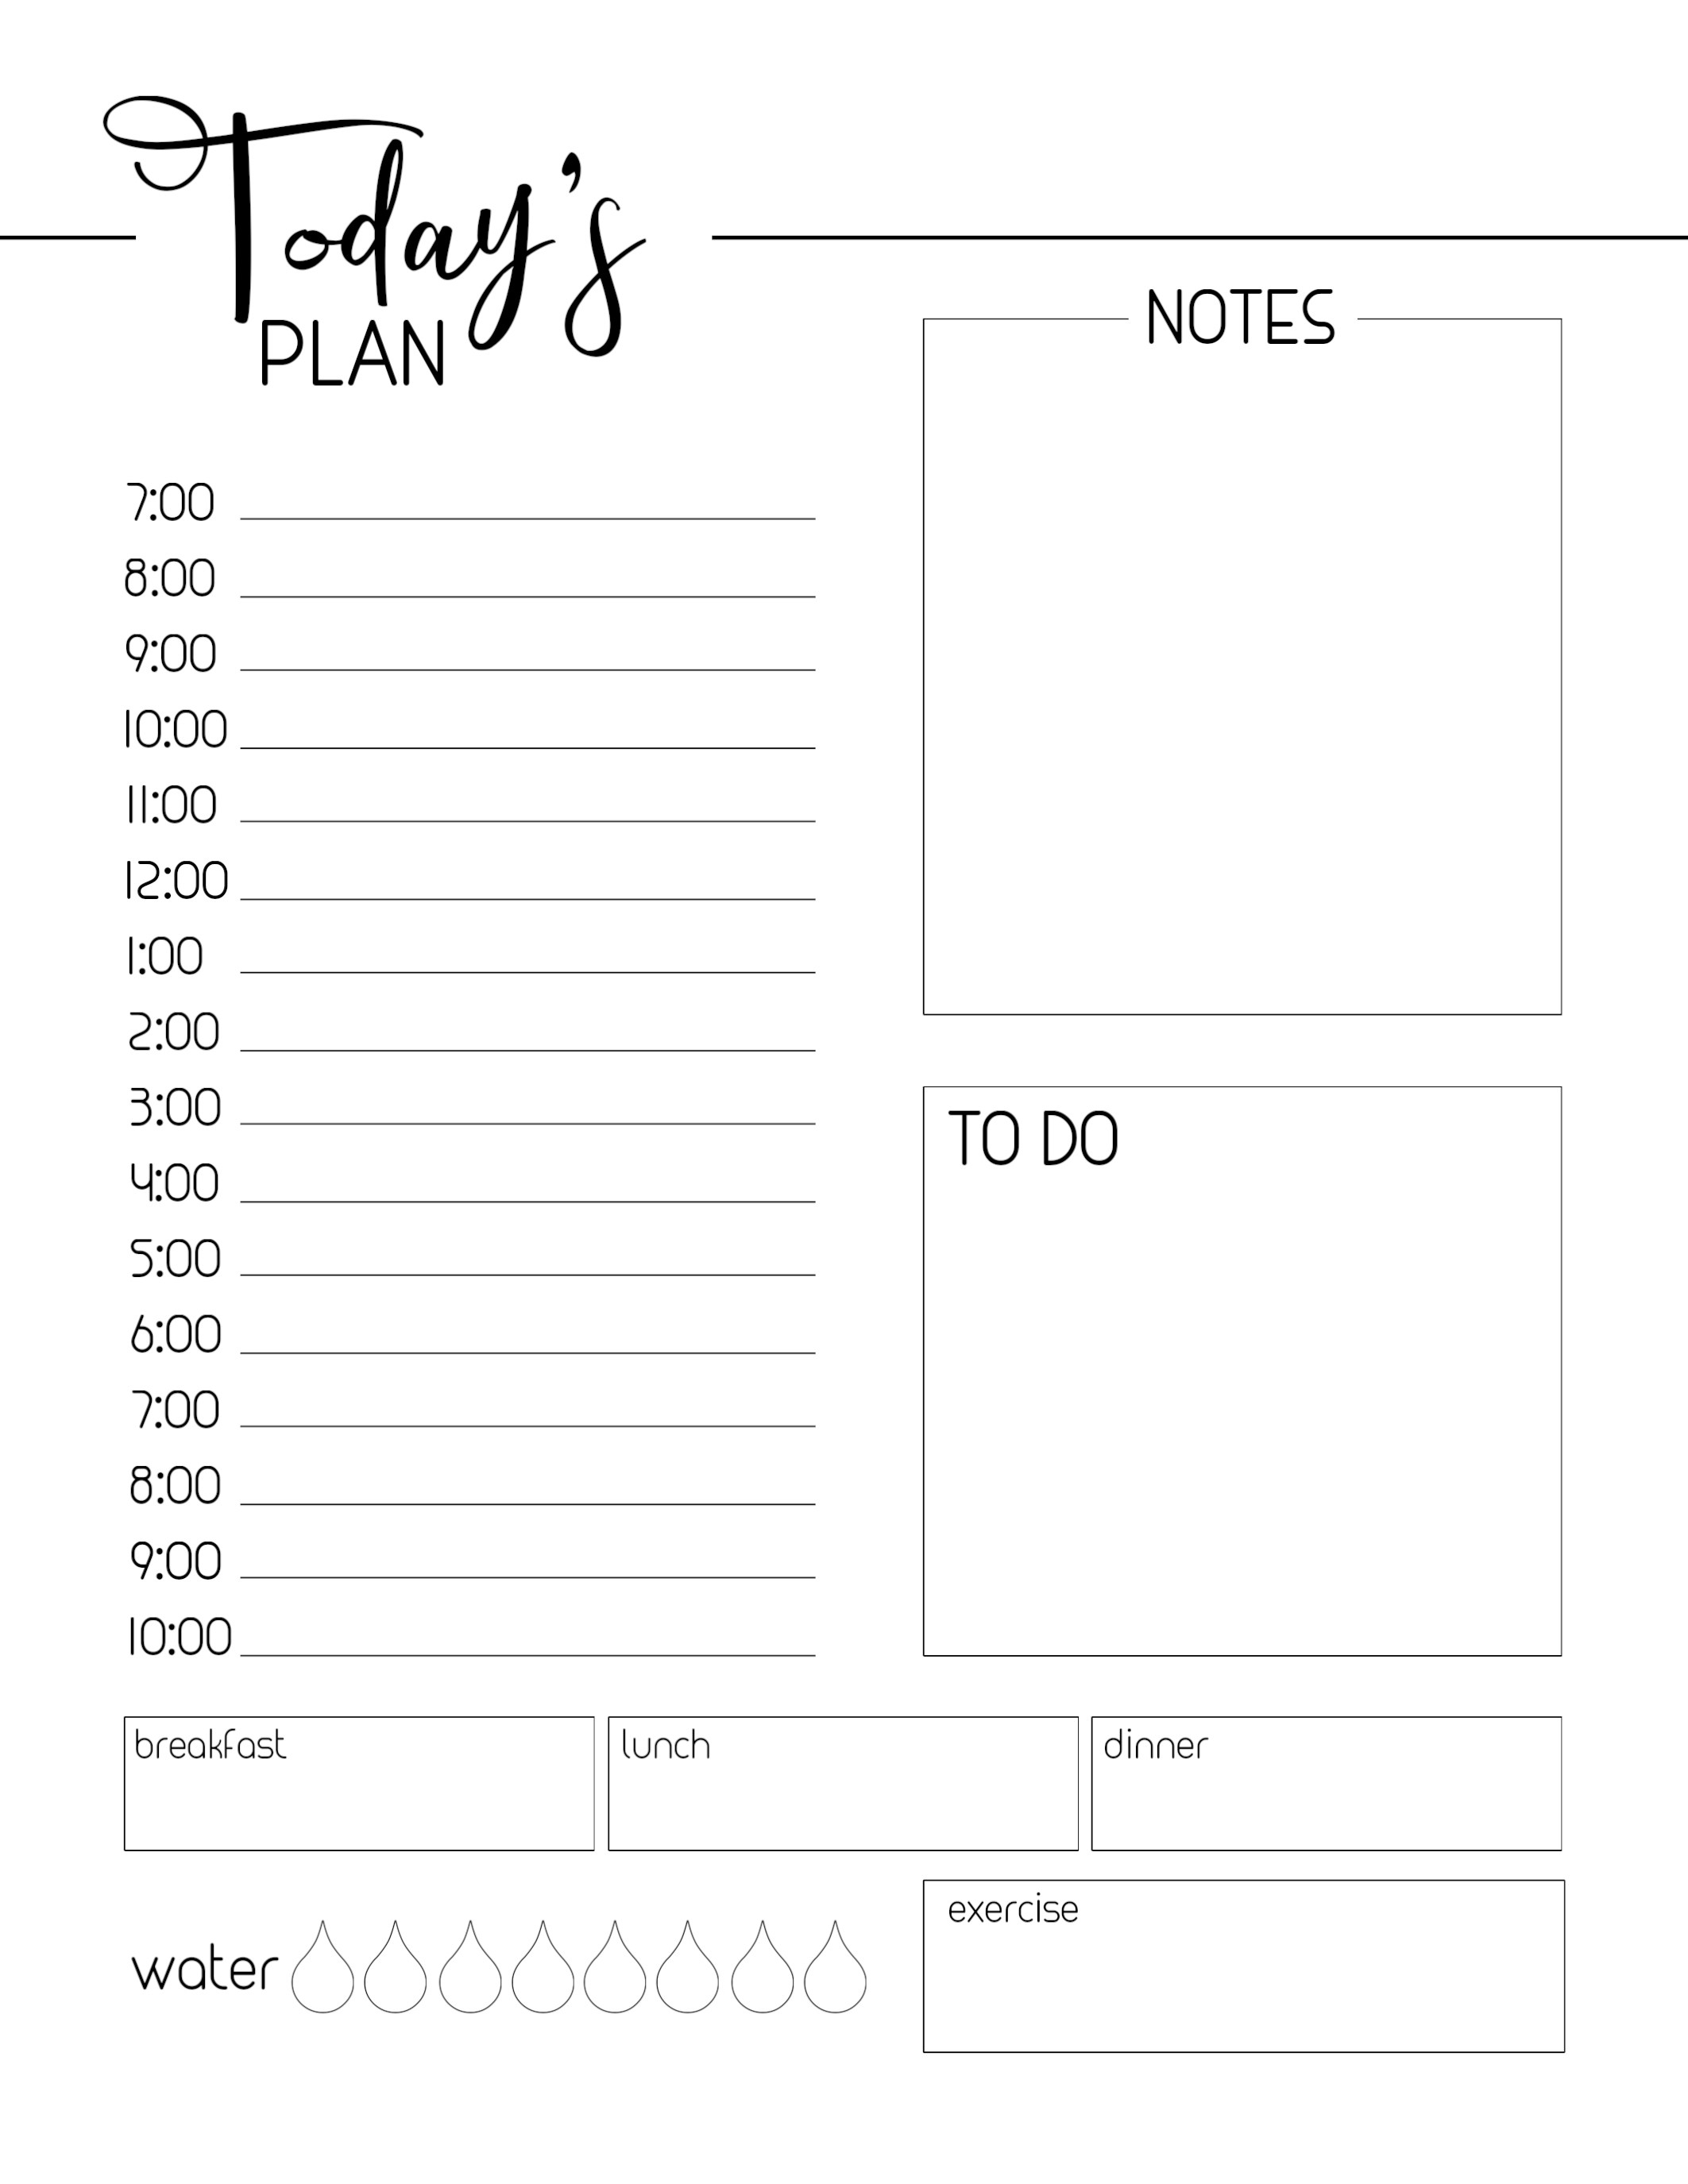 Free Printable Daily Planner Template - Paper Trail Design pertaining to Printable Daily Planner Template